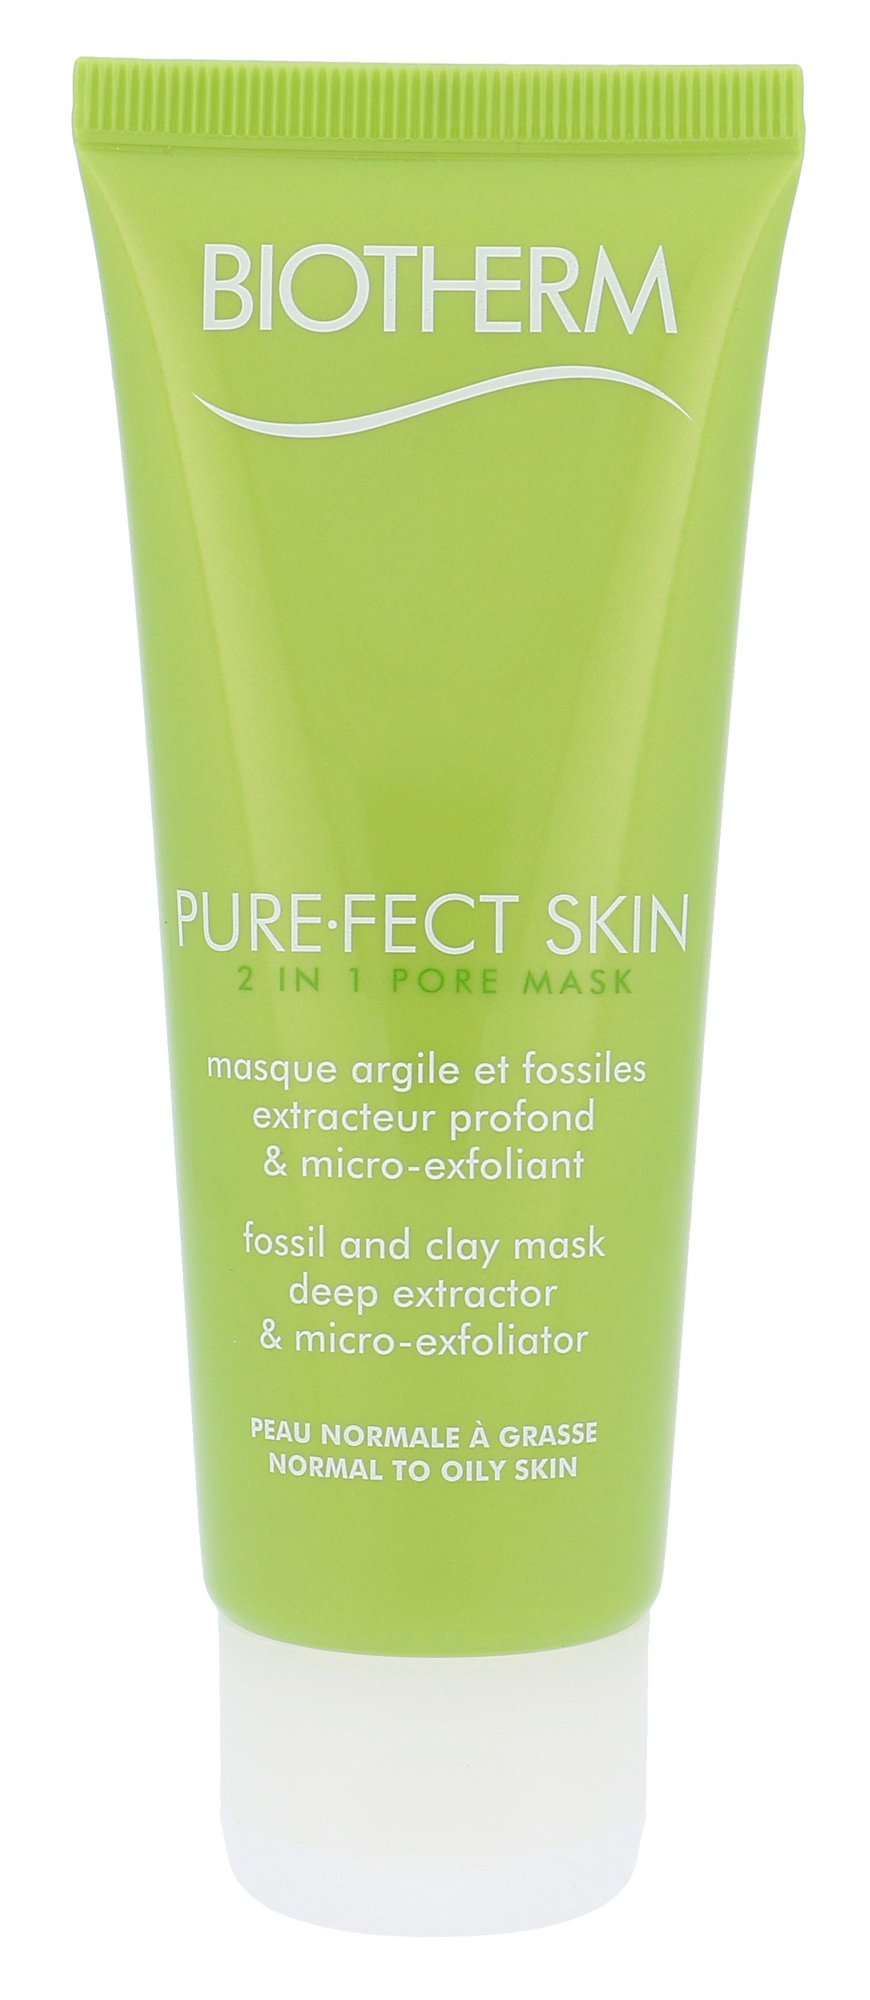 Biotherm PureFect Skin Cosmetic 75ml  2in1 Pore Mask